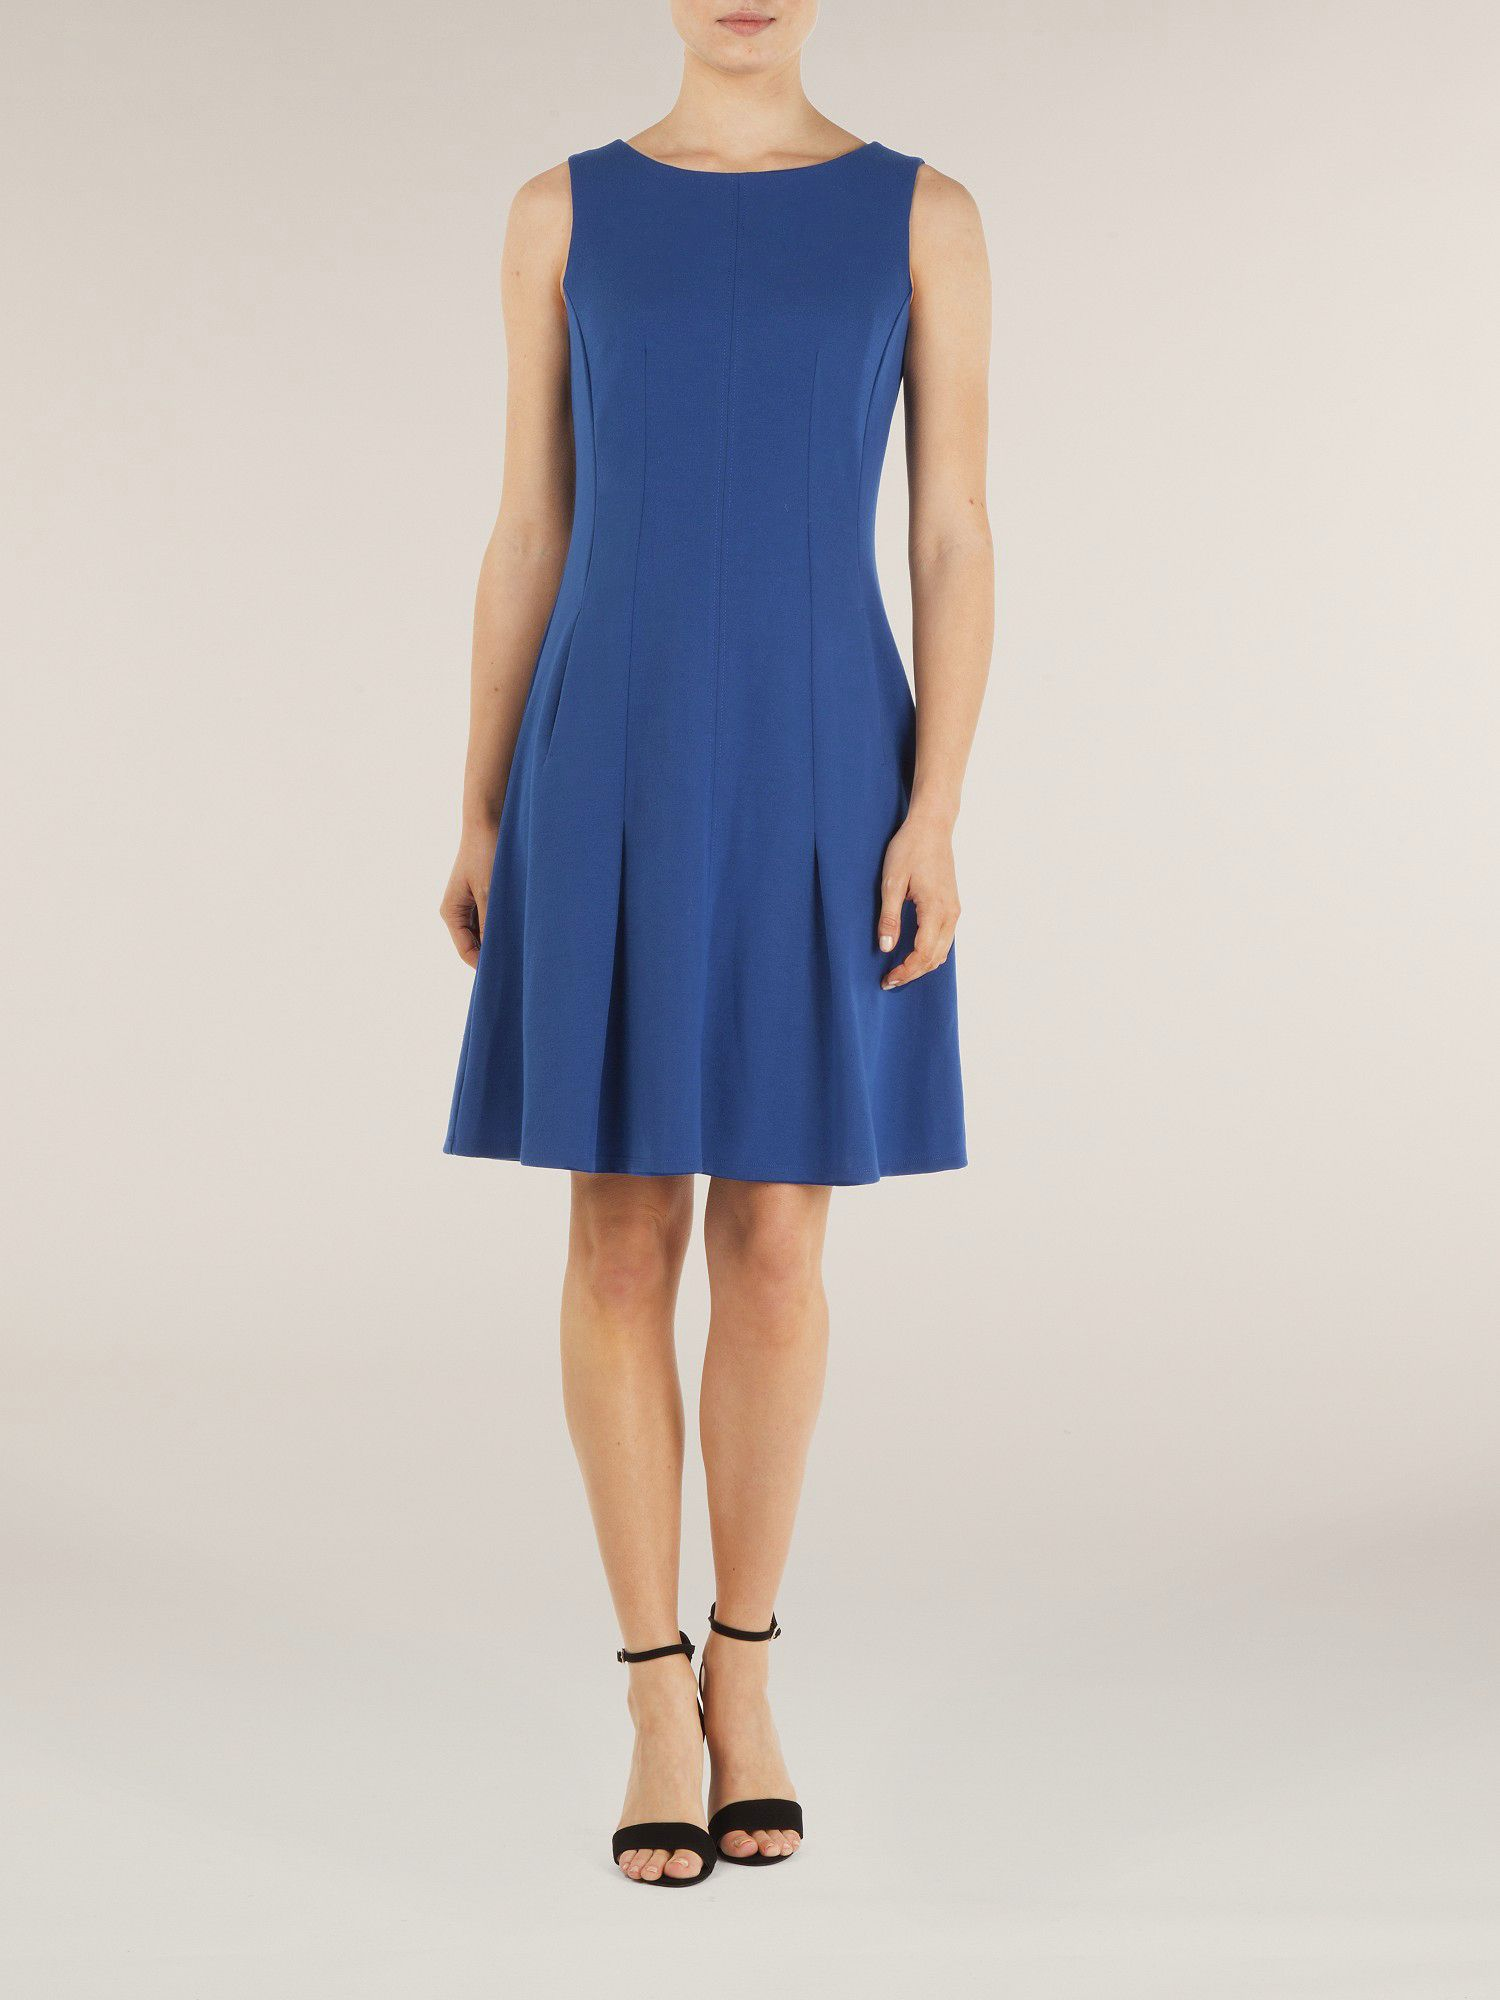 Blue sculptured dress